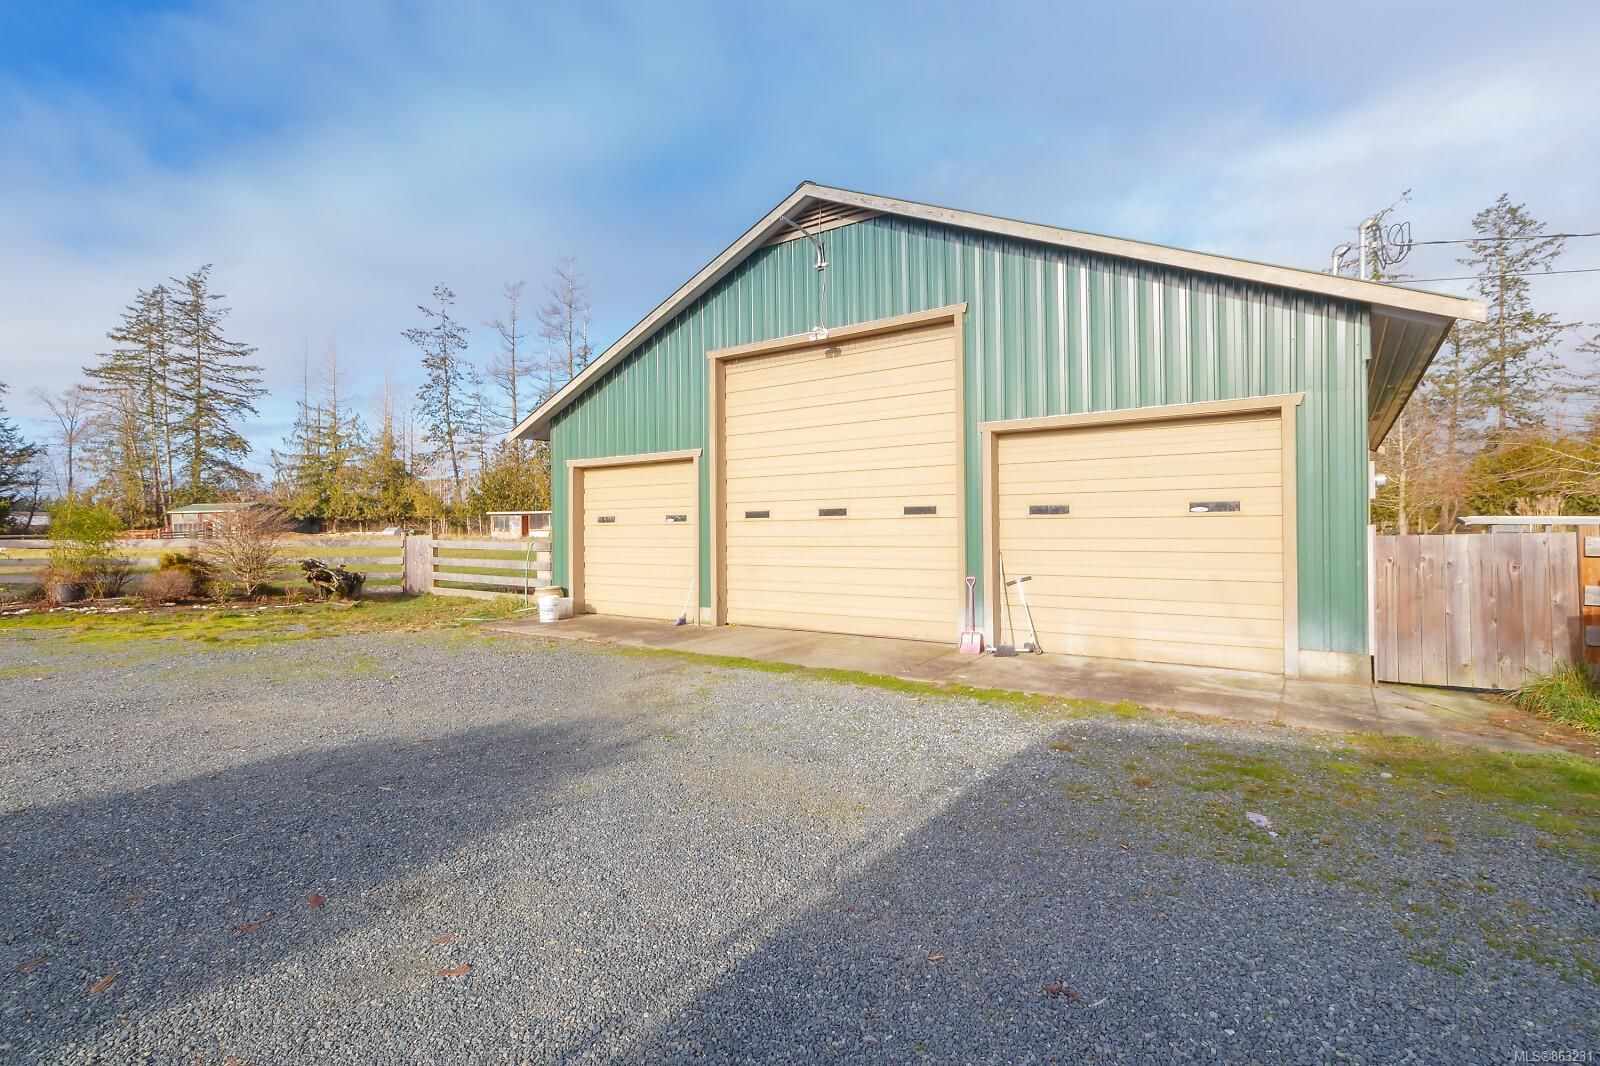 Photo 29: Photos: 1230 Hodges Rd in : PQ French Creek House for sale (Parksville/Qualicum)  : MLS®# 863231